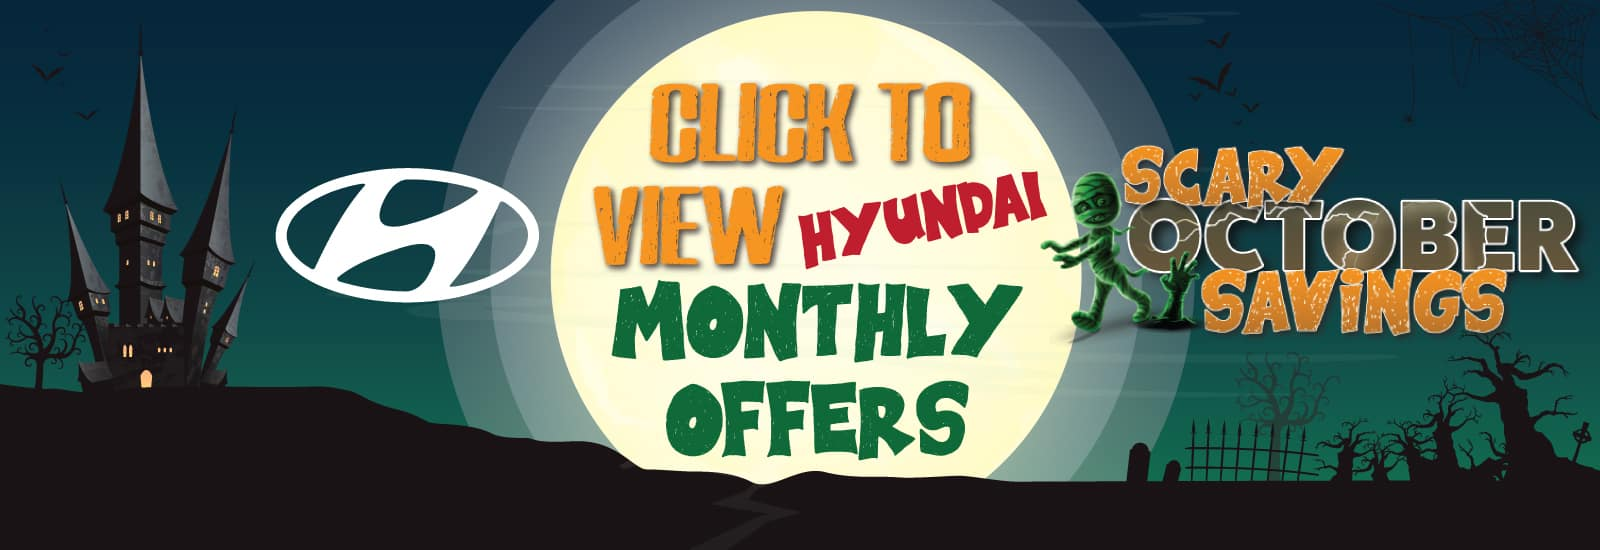 View-Hyundai-Monthly-Offers-Banner-1600×550.jpg Oct